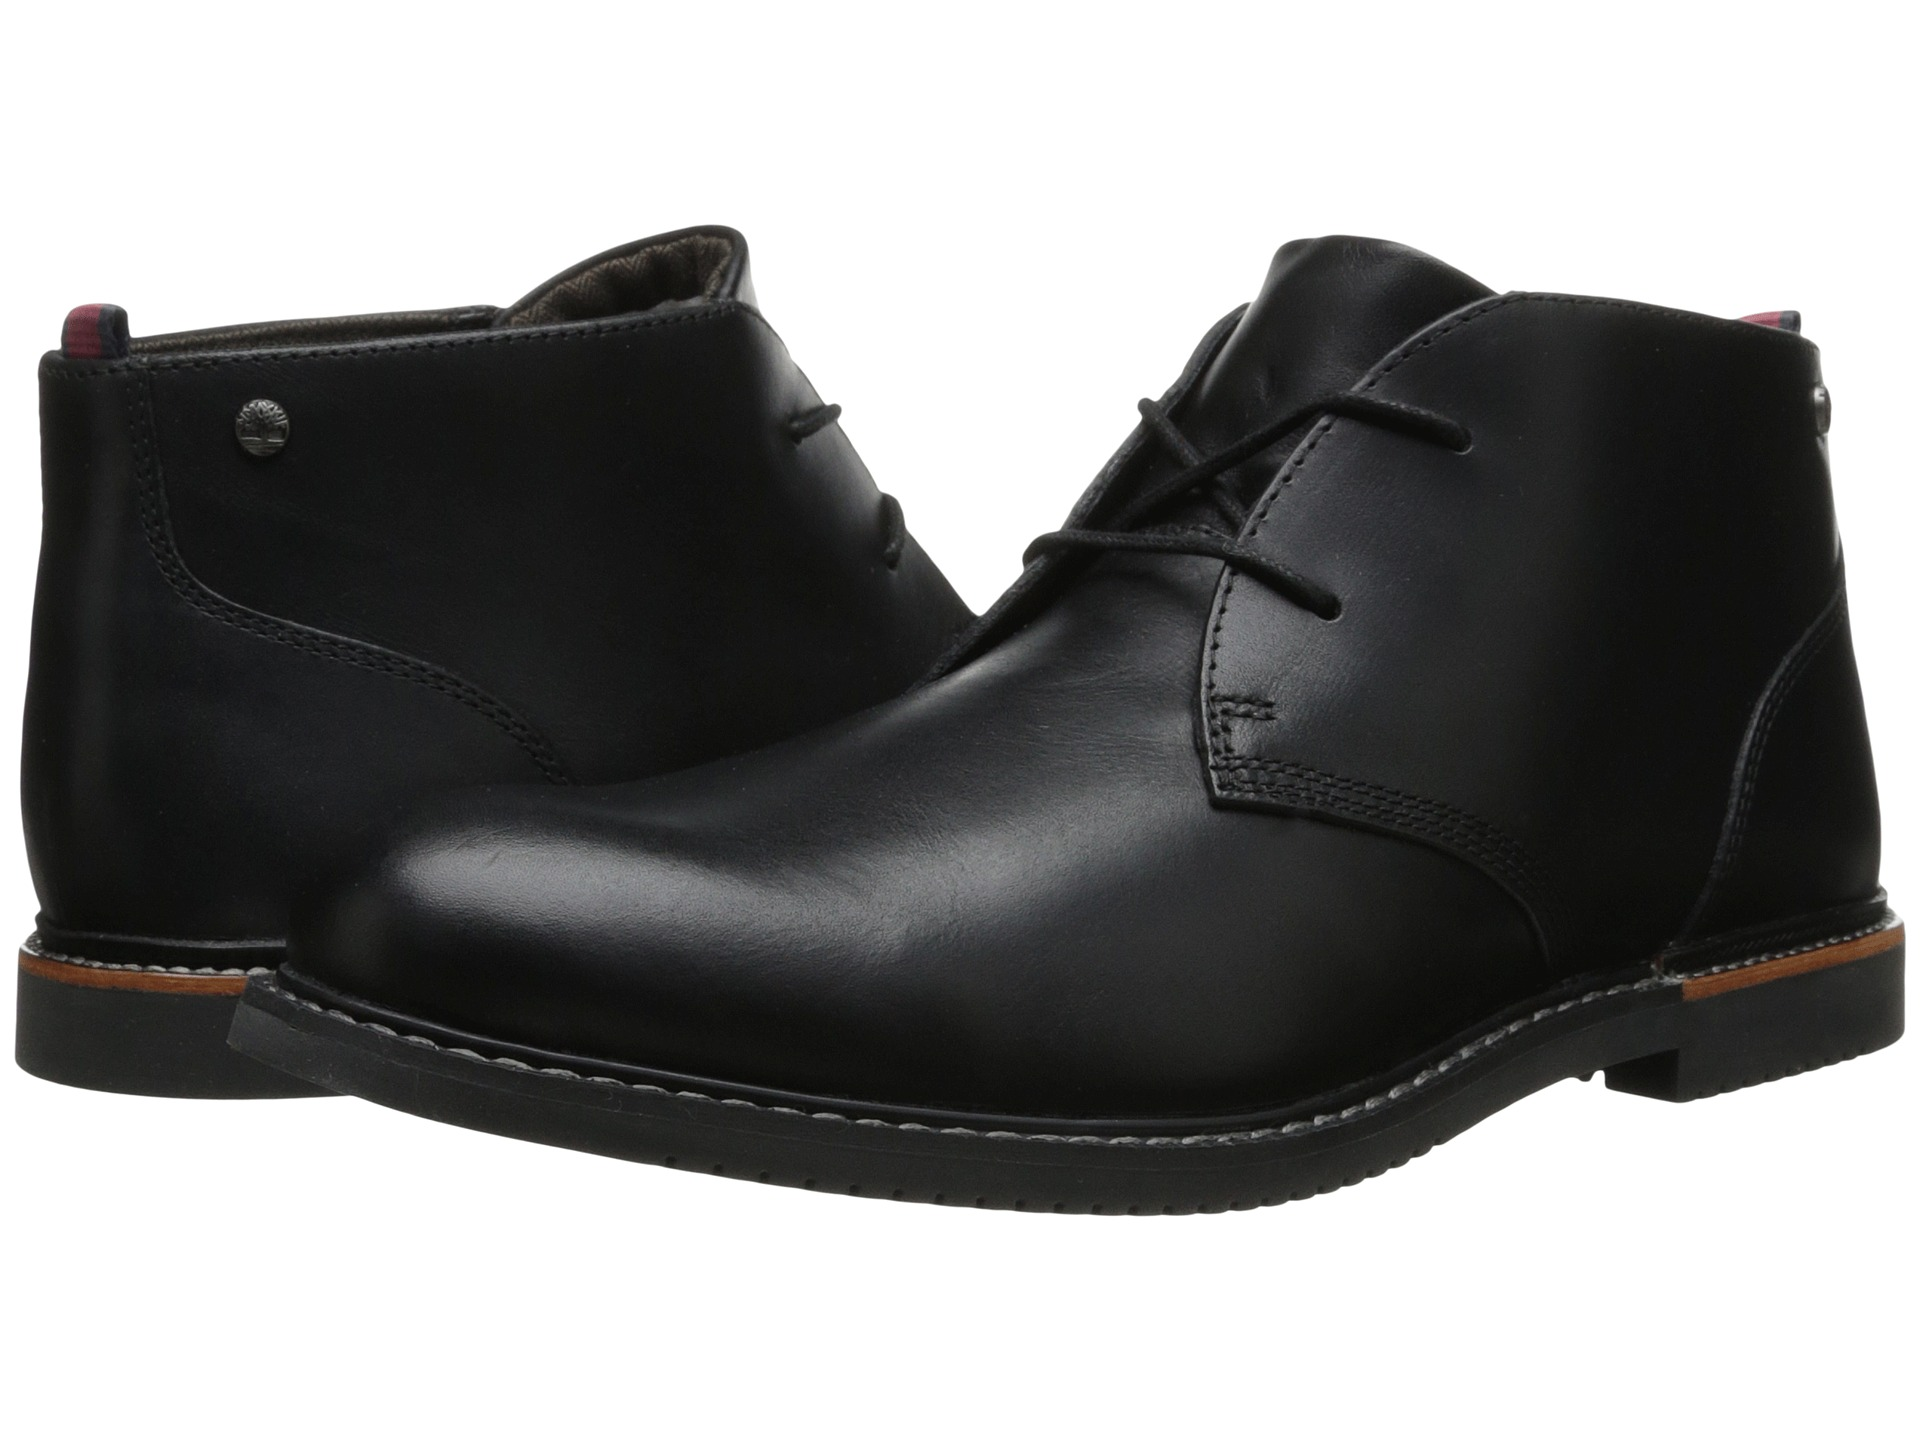 Timberland Earthkeepers(r) Brook Park Chukka (Black Smooth) Men's Lace-up Boots Keep it easy and classy in the Earthkeepers Brook Park Chukka from Timberland. Full grain leather upper.